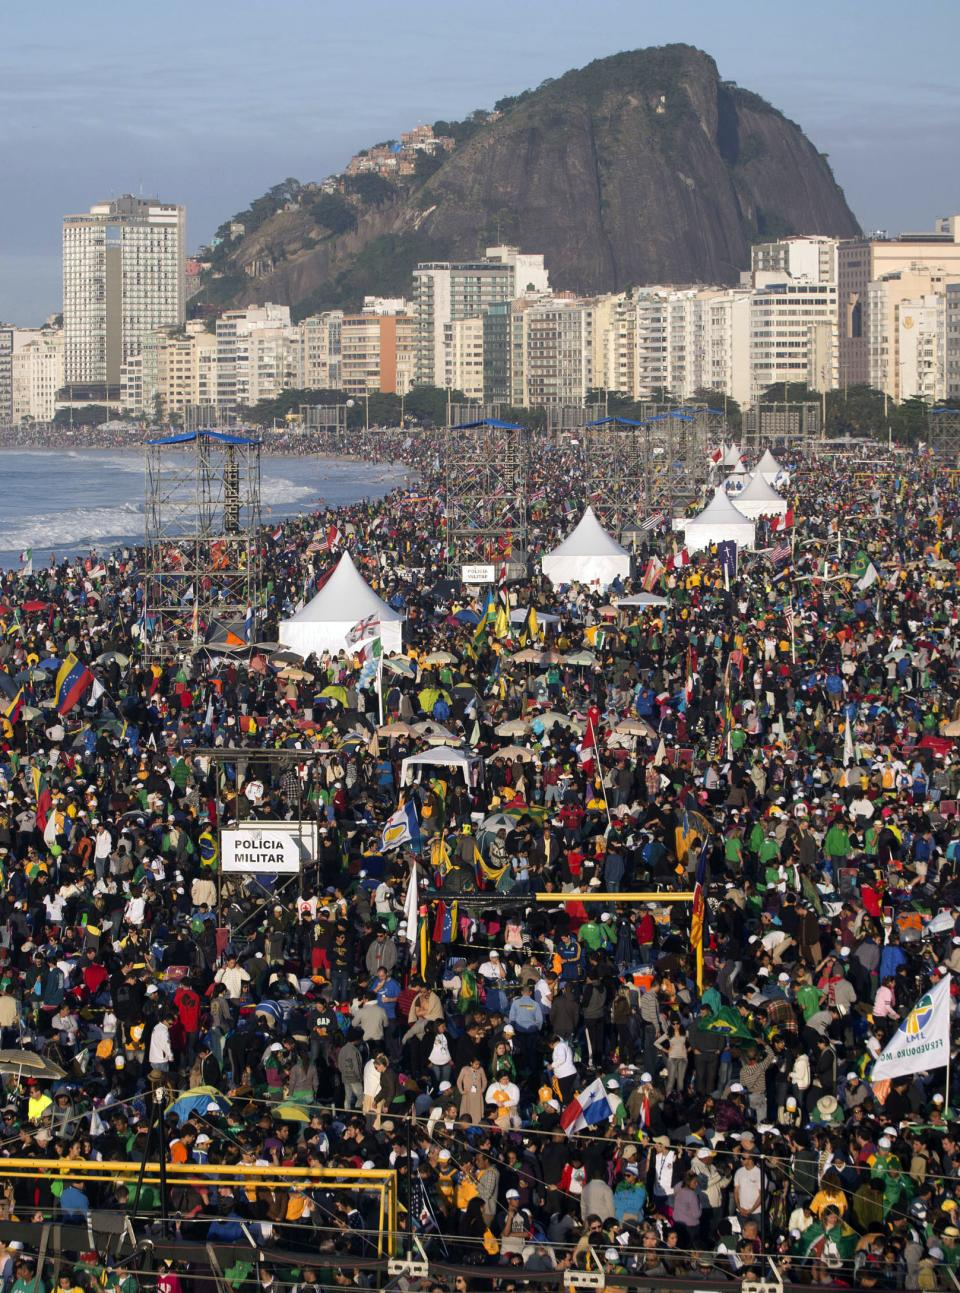 Pilgrims pack Copacabana beach in Rio de Janeiro, Brazil, Sunday, July 28, 2013. Hundreds of thousands of young people slept under chilly skies in the white sand awaiting Pope Francis' final Mass for World Youth Day.(AP Photo/Victor R. Caivano)